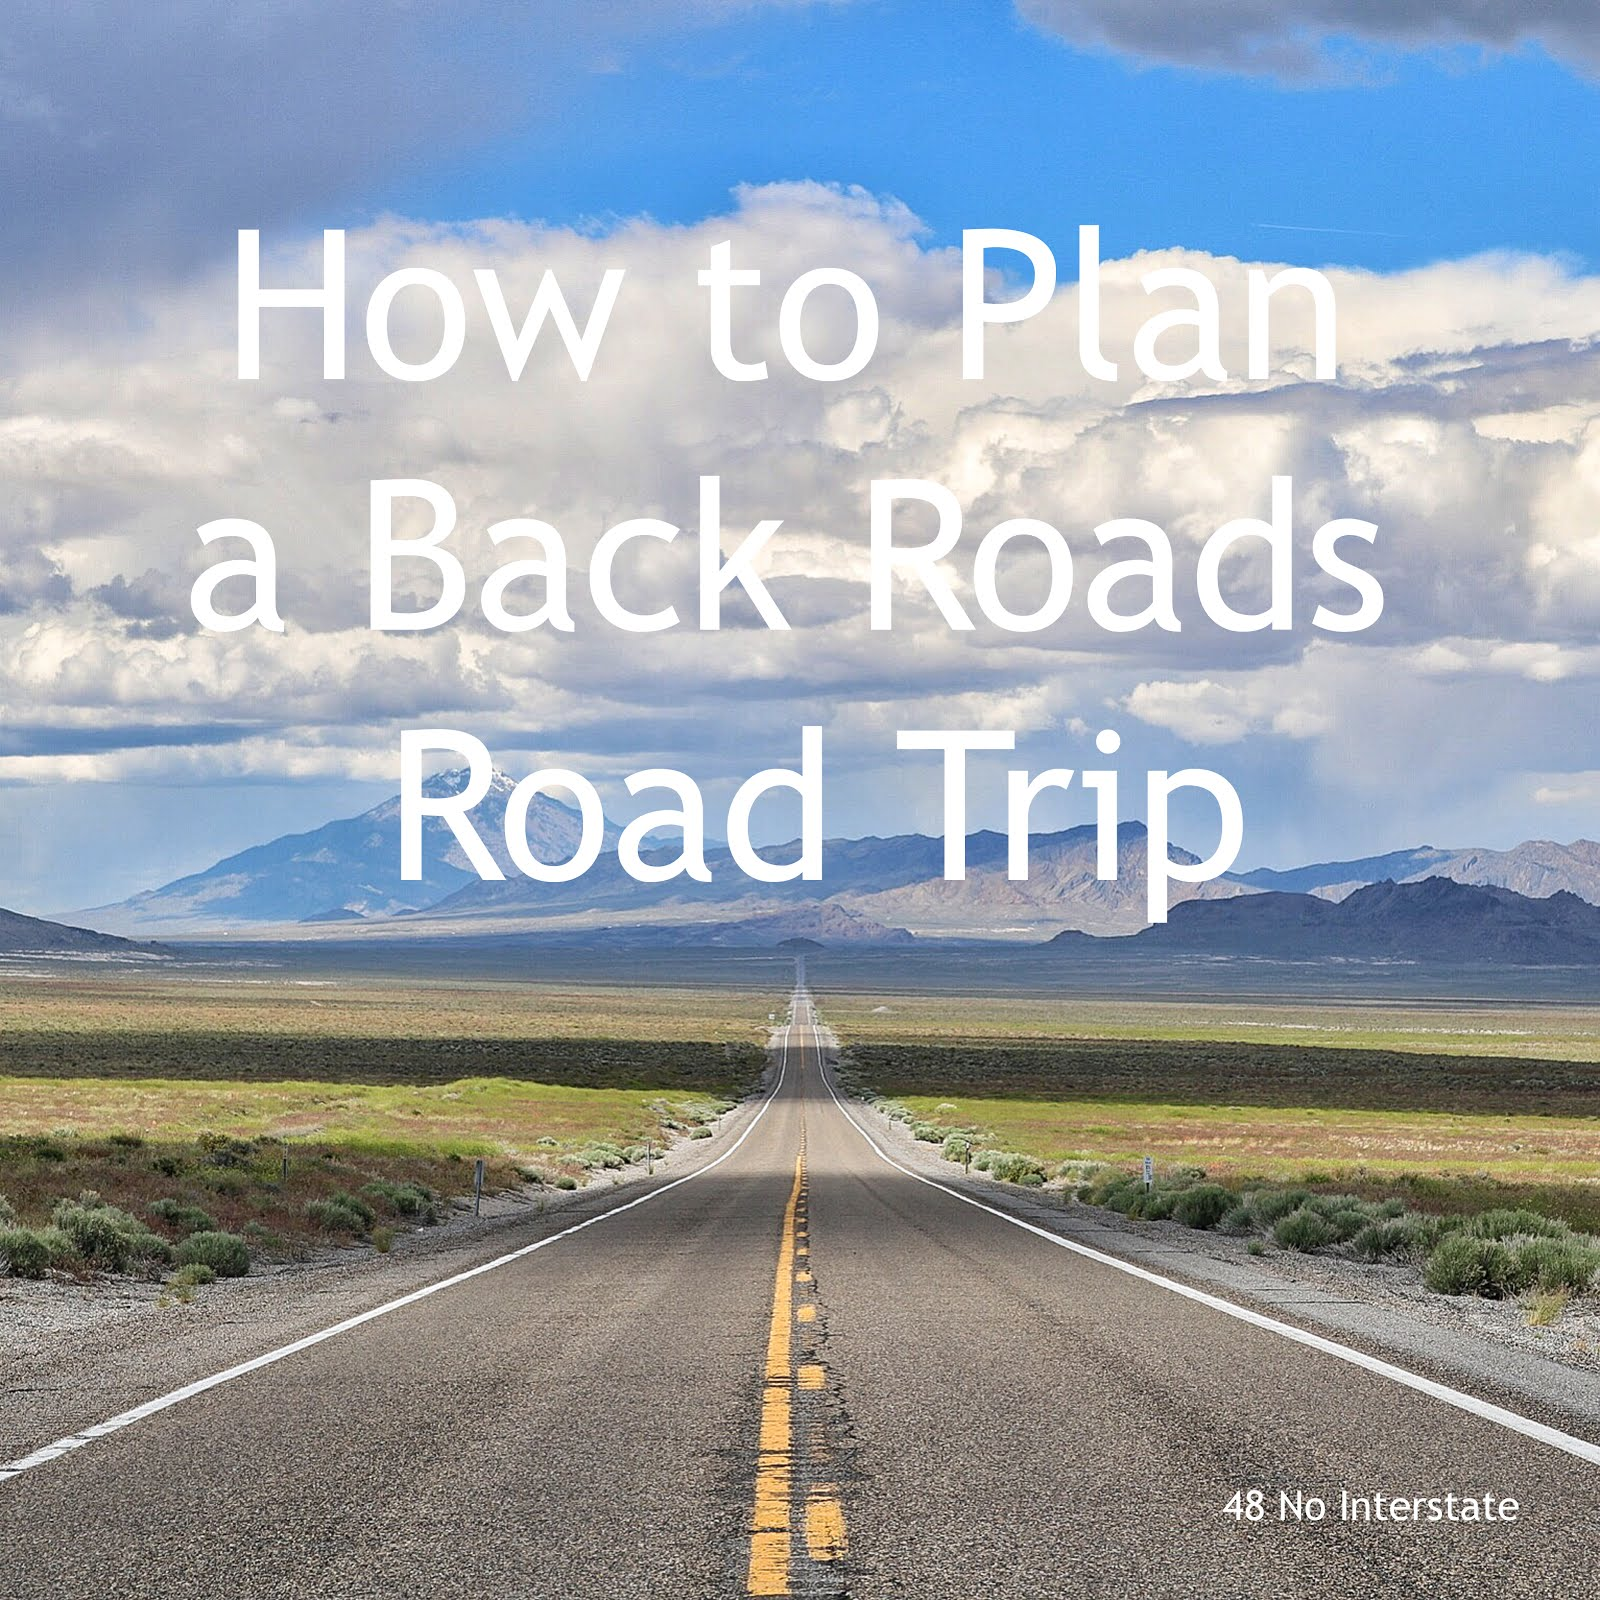 Plan Your Own Back Roads Road Trip!